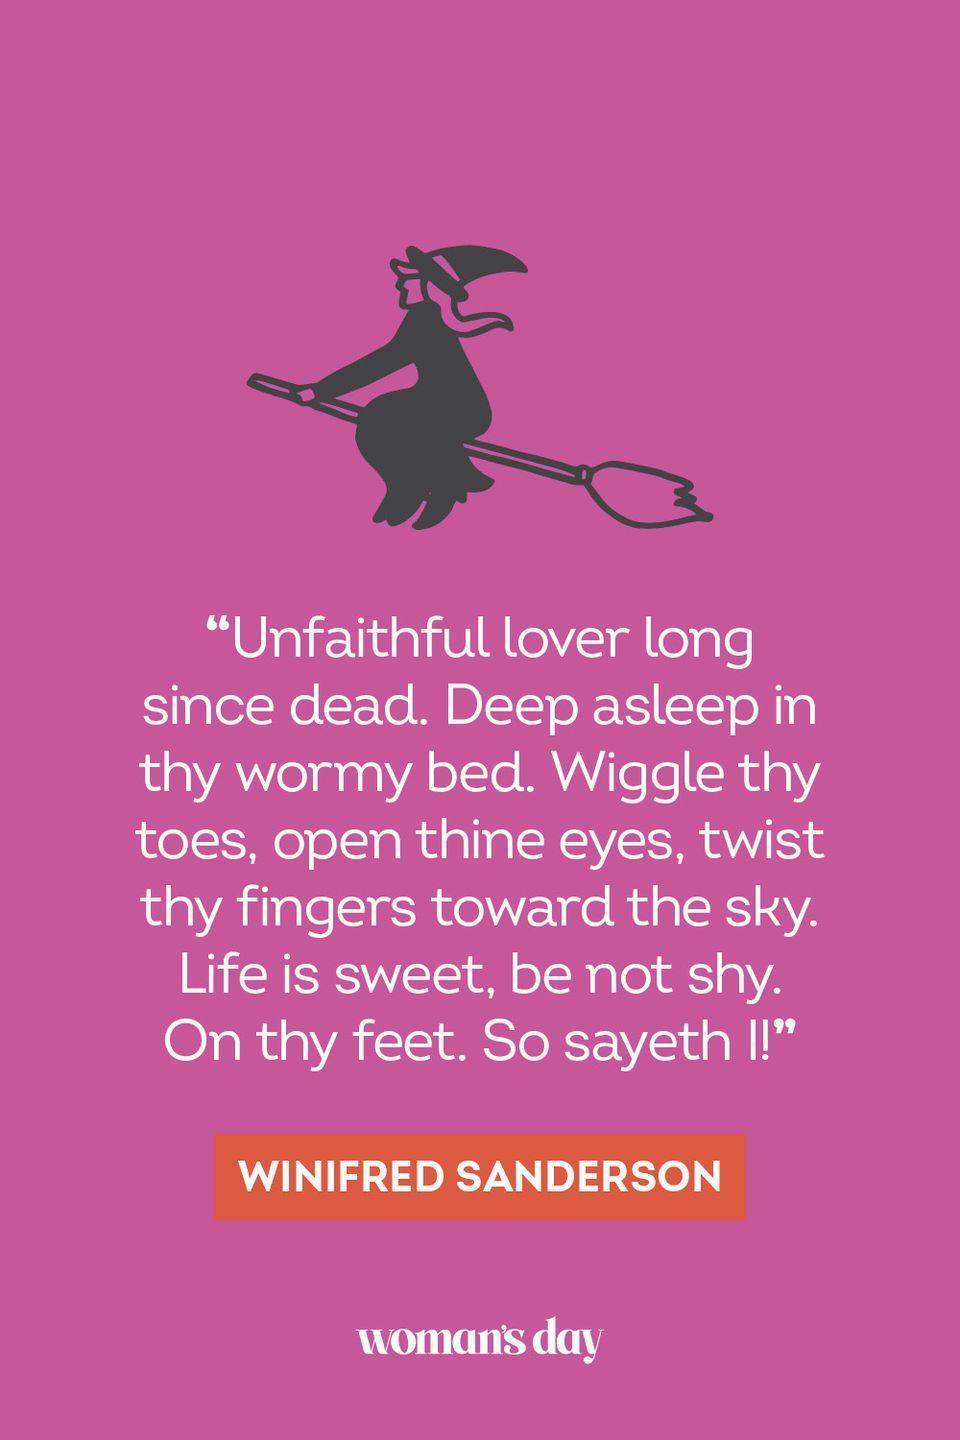 """<p>""""Unfaithful lover long since dead. Deep asleep in thy wormy bed. Wiggle thy toes, open thine eyes, twist thy fingers toward the sky. Life is sweet, be not shy. On thy feet. So sayeth I!"""" — Winifred Sanderson</p><p><strong>__________________________________________________________</strong></p><p>Want more Woman's Day? <a href=""""https://subscribe.hearstmags.com/subscribe/womansday/253396?source=wdy_edit_article"""" rel=""""nofollow noopener"""" target=""""_blank"""" data-ylk=""""slk:Subscribe to Woman's Day"""" class=""""link rapid-noclick-resp"""">Subscribe to Woman's Day</a> today and get <strong>73% off your first 12 issues</strong>. And while you're at it, <a href=""""https://link.womansday.com/join/3o9/wdy-newsletter"""" rel=""""nofollow noopener"""" target=""""_blank"""" data-ylk=""""slk:sign up for our FREE newsletter"""" class=""""link rapid-noclick-resp"""">sign up for our FREE newsletter</a> for even more of the Woman's Day content you want.</p>"""